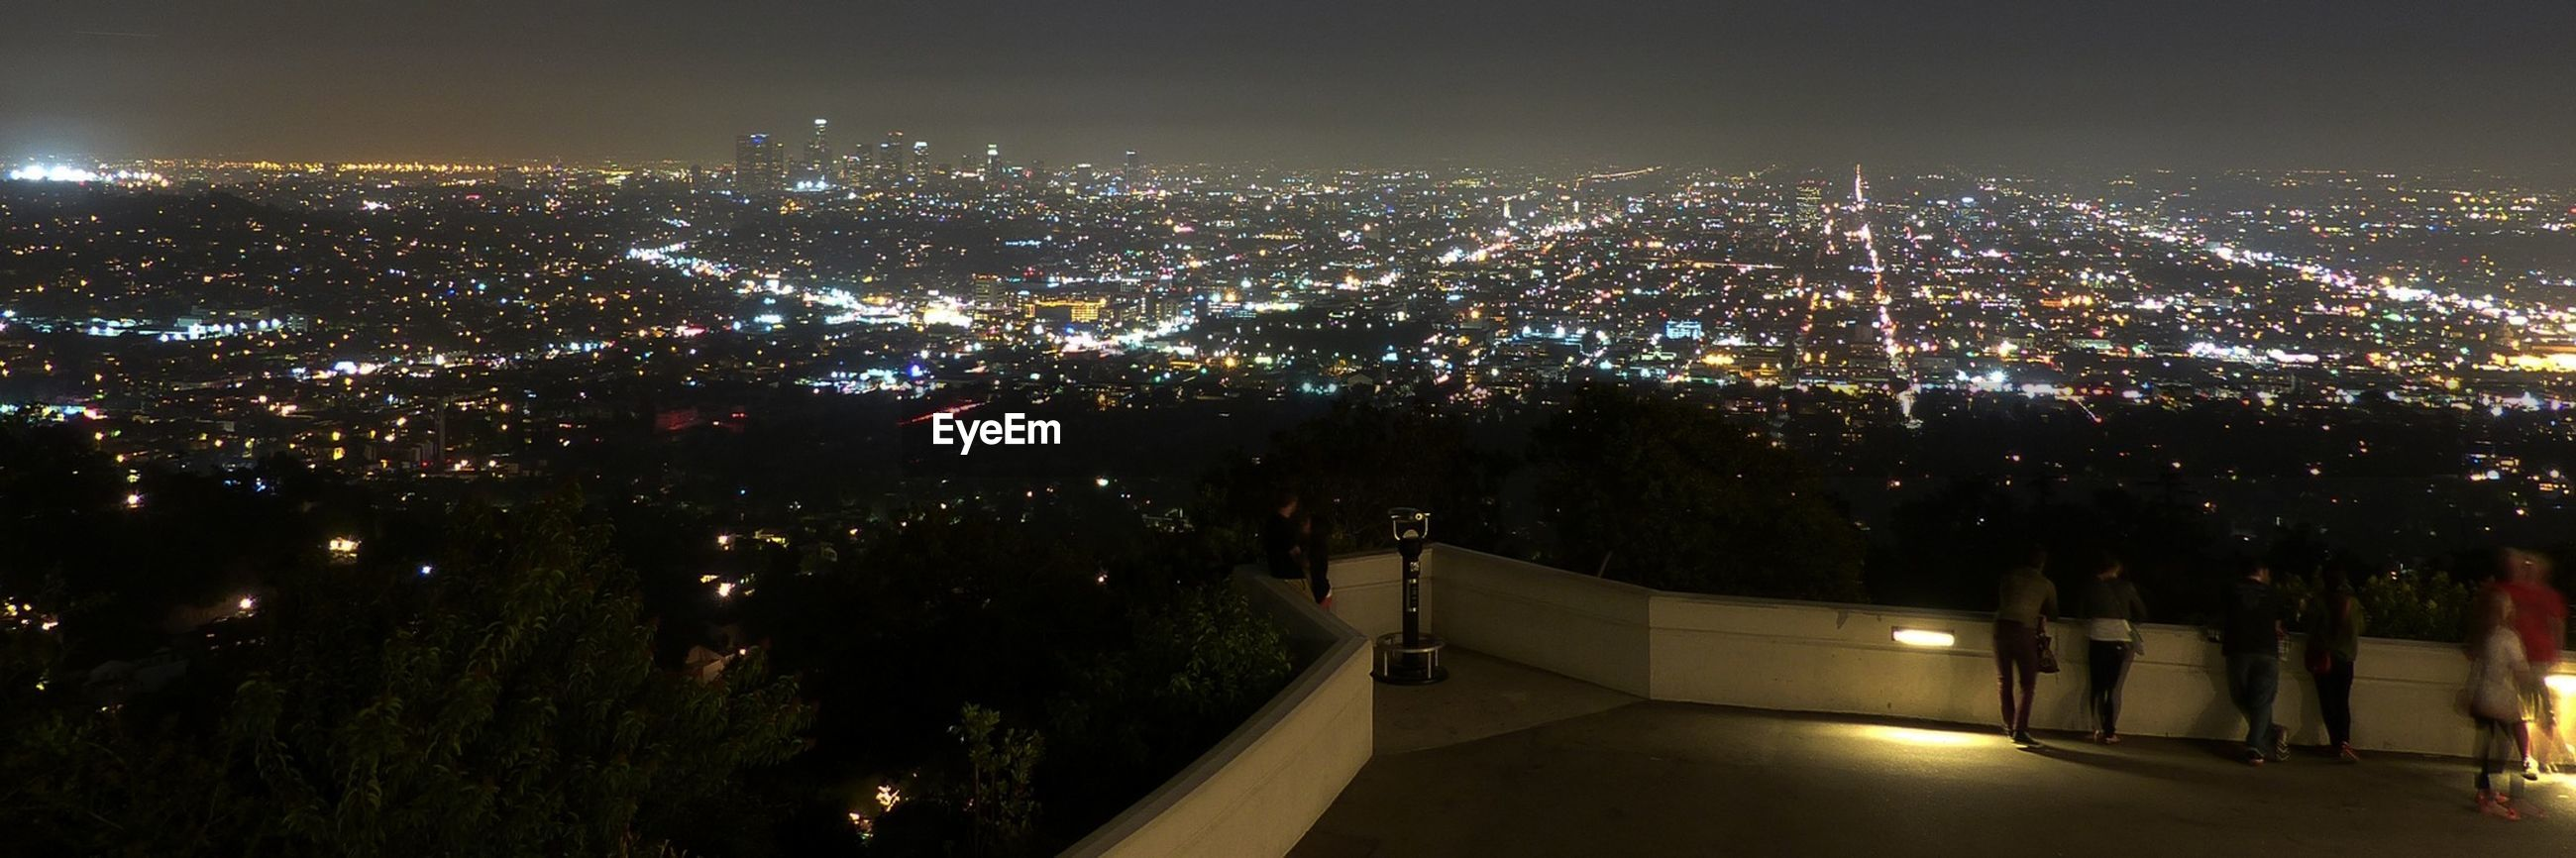 night, illuminated, city, building exterior, cityscape, architecture, built structure, crowded, high angle view, city life, light - natural phenomenon, lighting equipment, residential district, outdoors, dark, residential building, sky, light, road, street